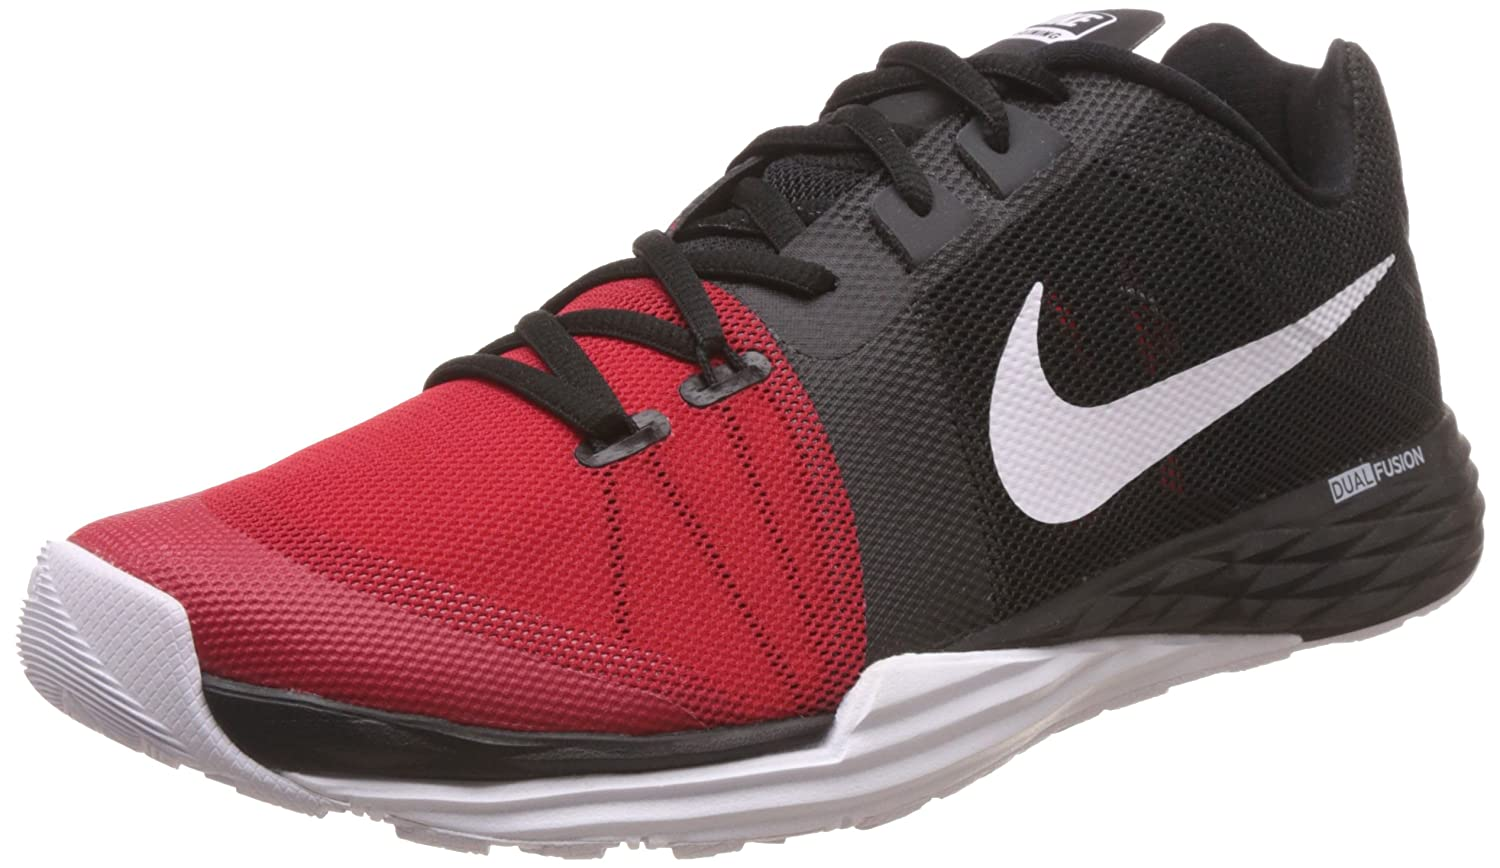 NIKE Men's Train Prime Iron DF Cross Trainer Shoes B014GMYMQA 9.5 D(M) US|Black/White/University Red/Anthracite